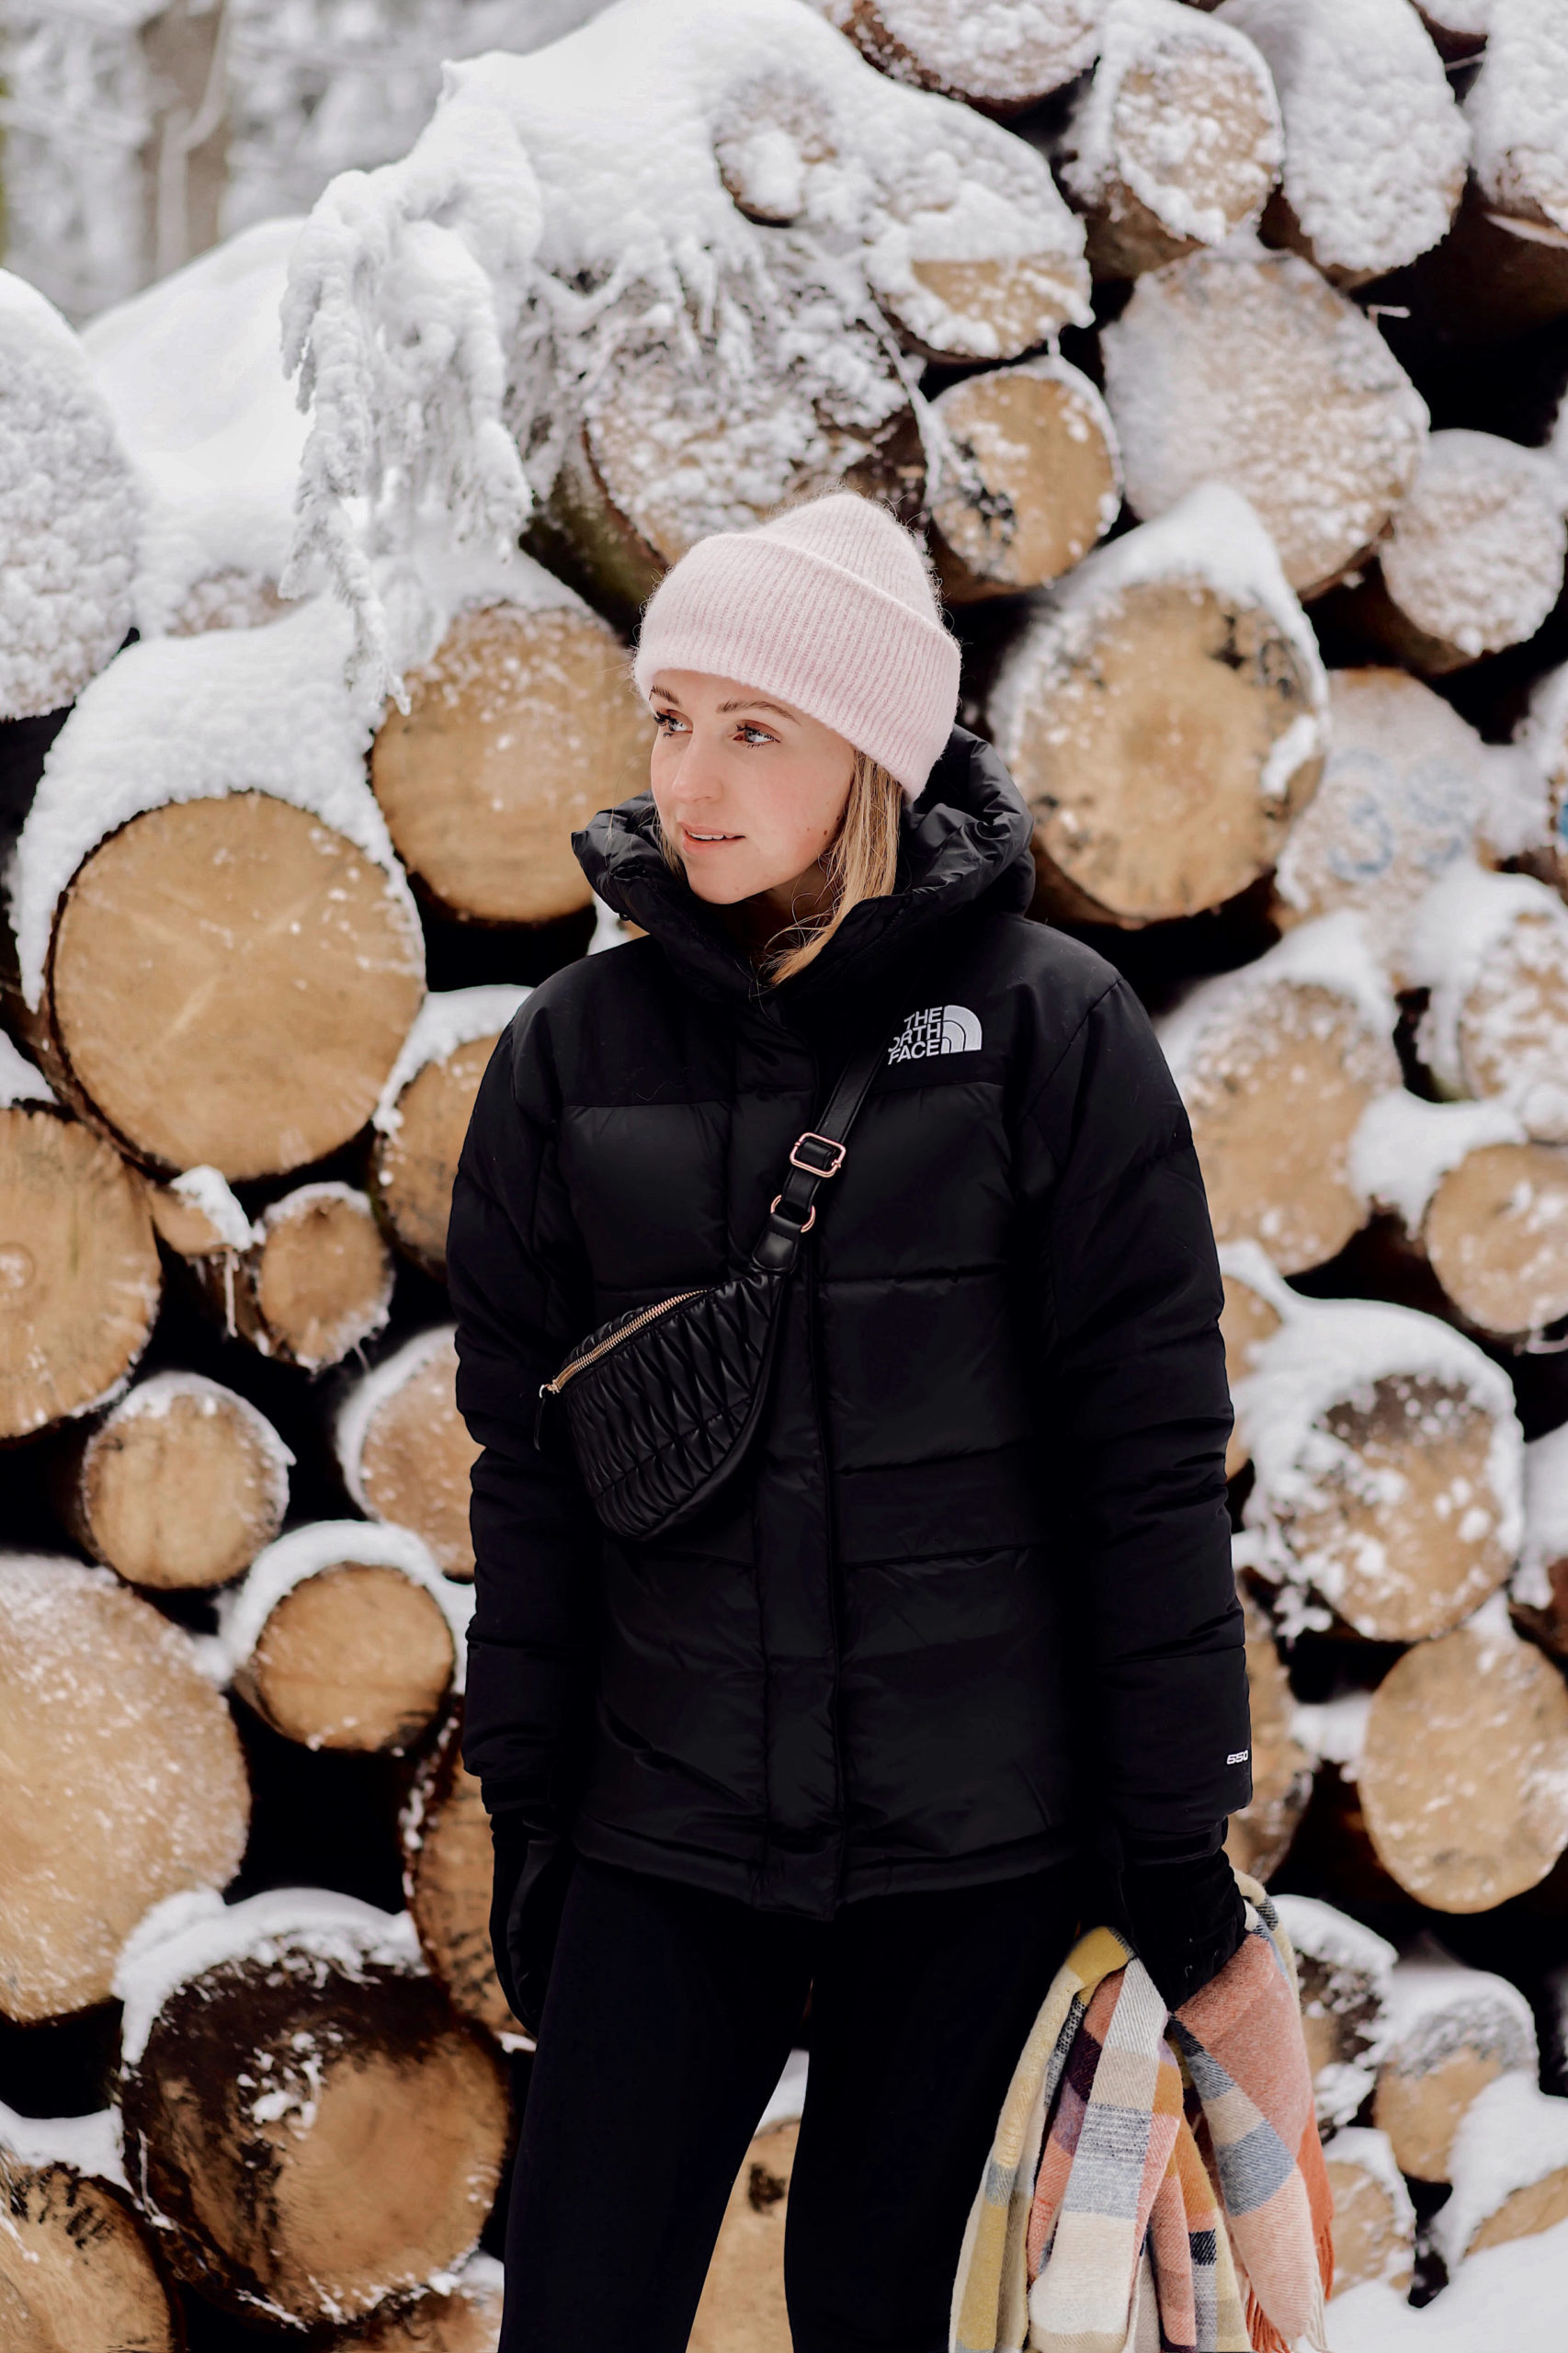 The North Face - die Winterjacke mit Style